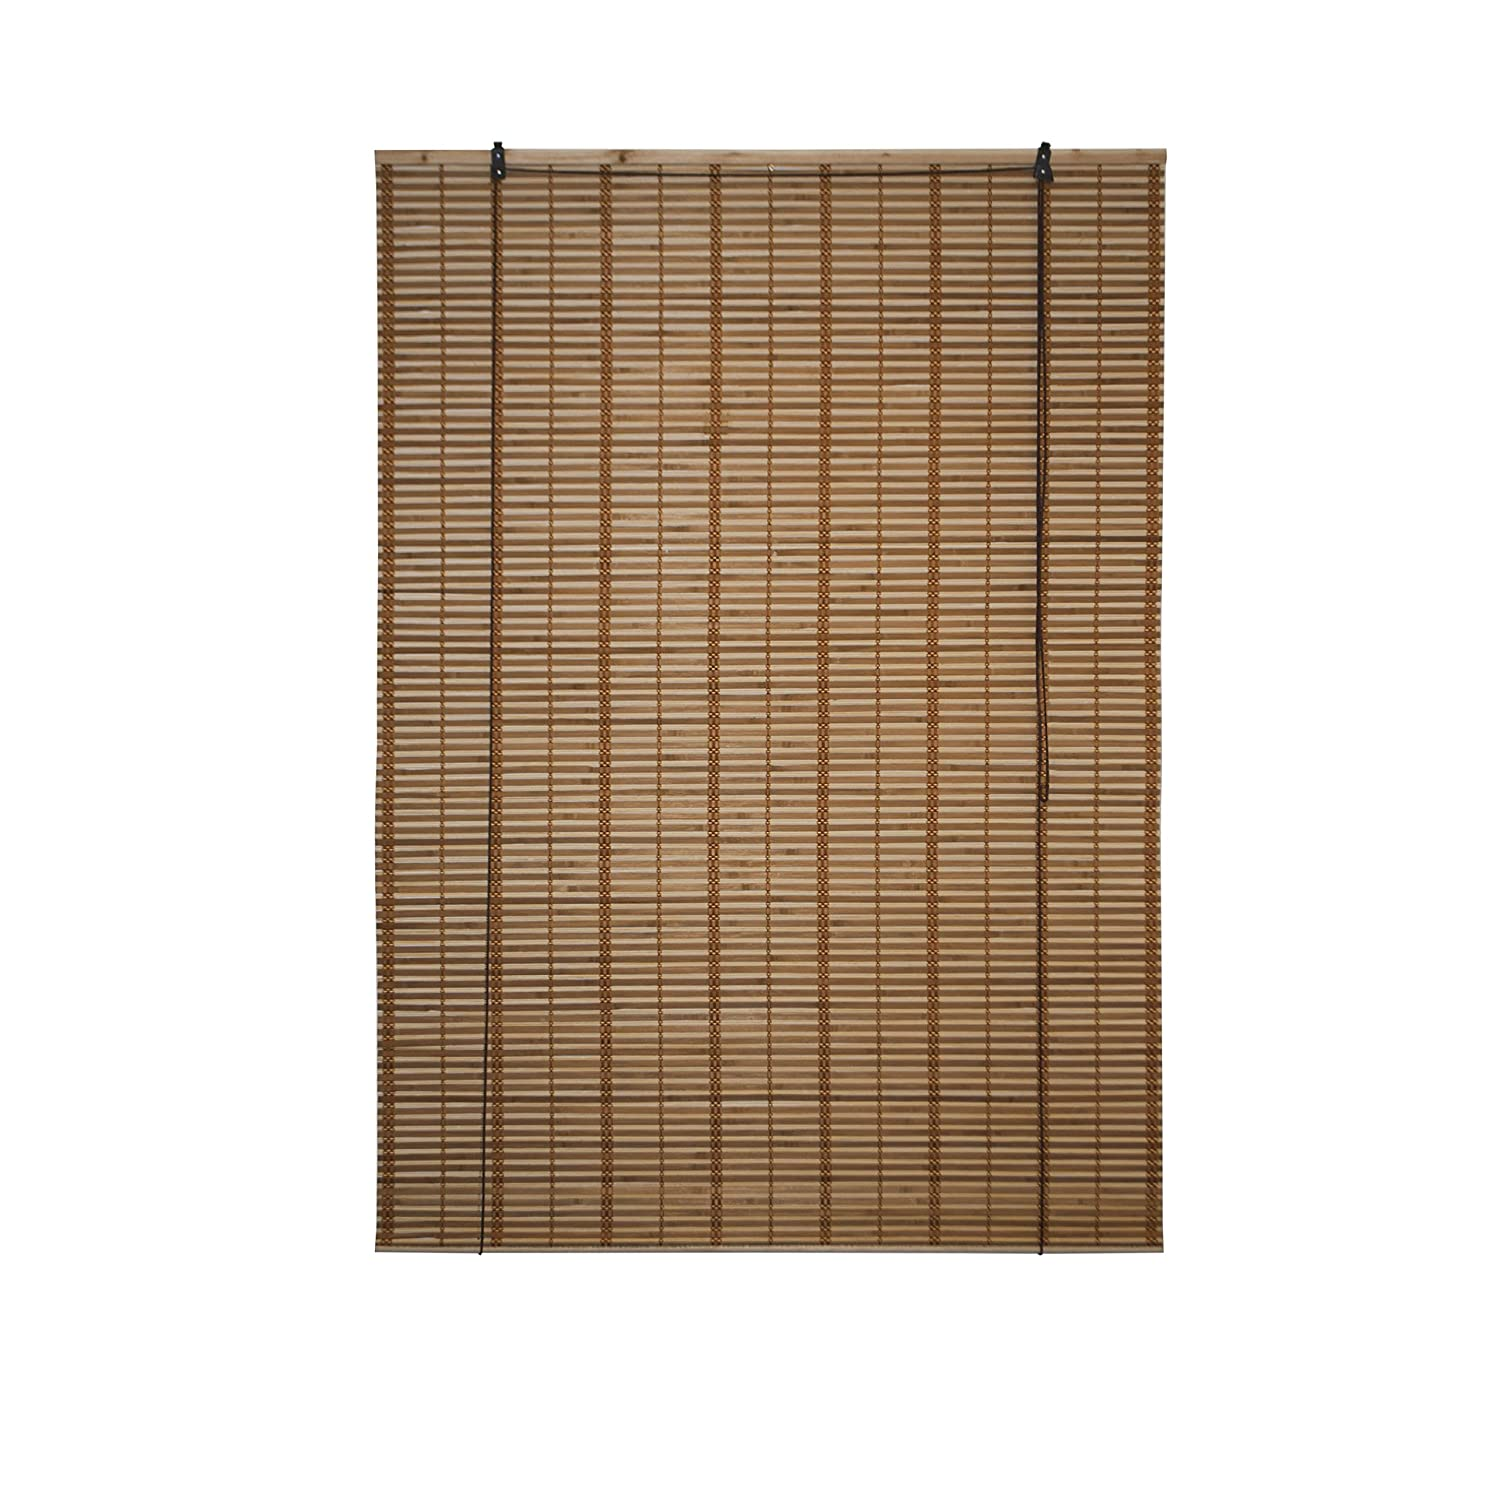 ALEKO® BBL46X64BR Light Brown Bamboo Midollino Wooden Roll Up Blinds Light Filtering Shades 46 X 64 Inches